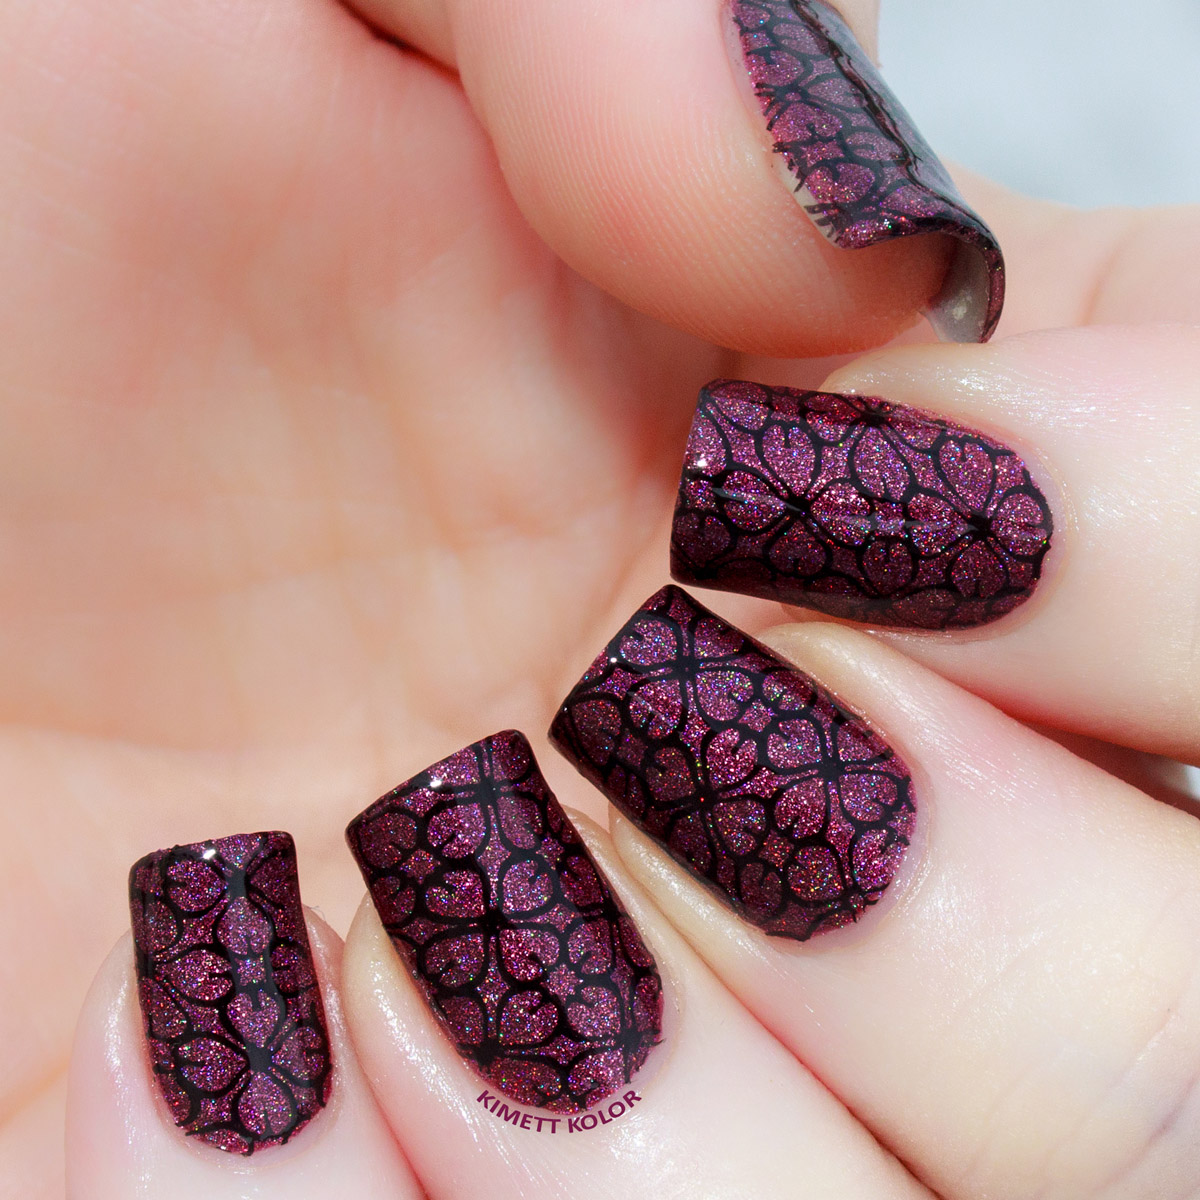 Kimett Kolor Plum Luck Stamped Nail Art